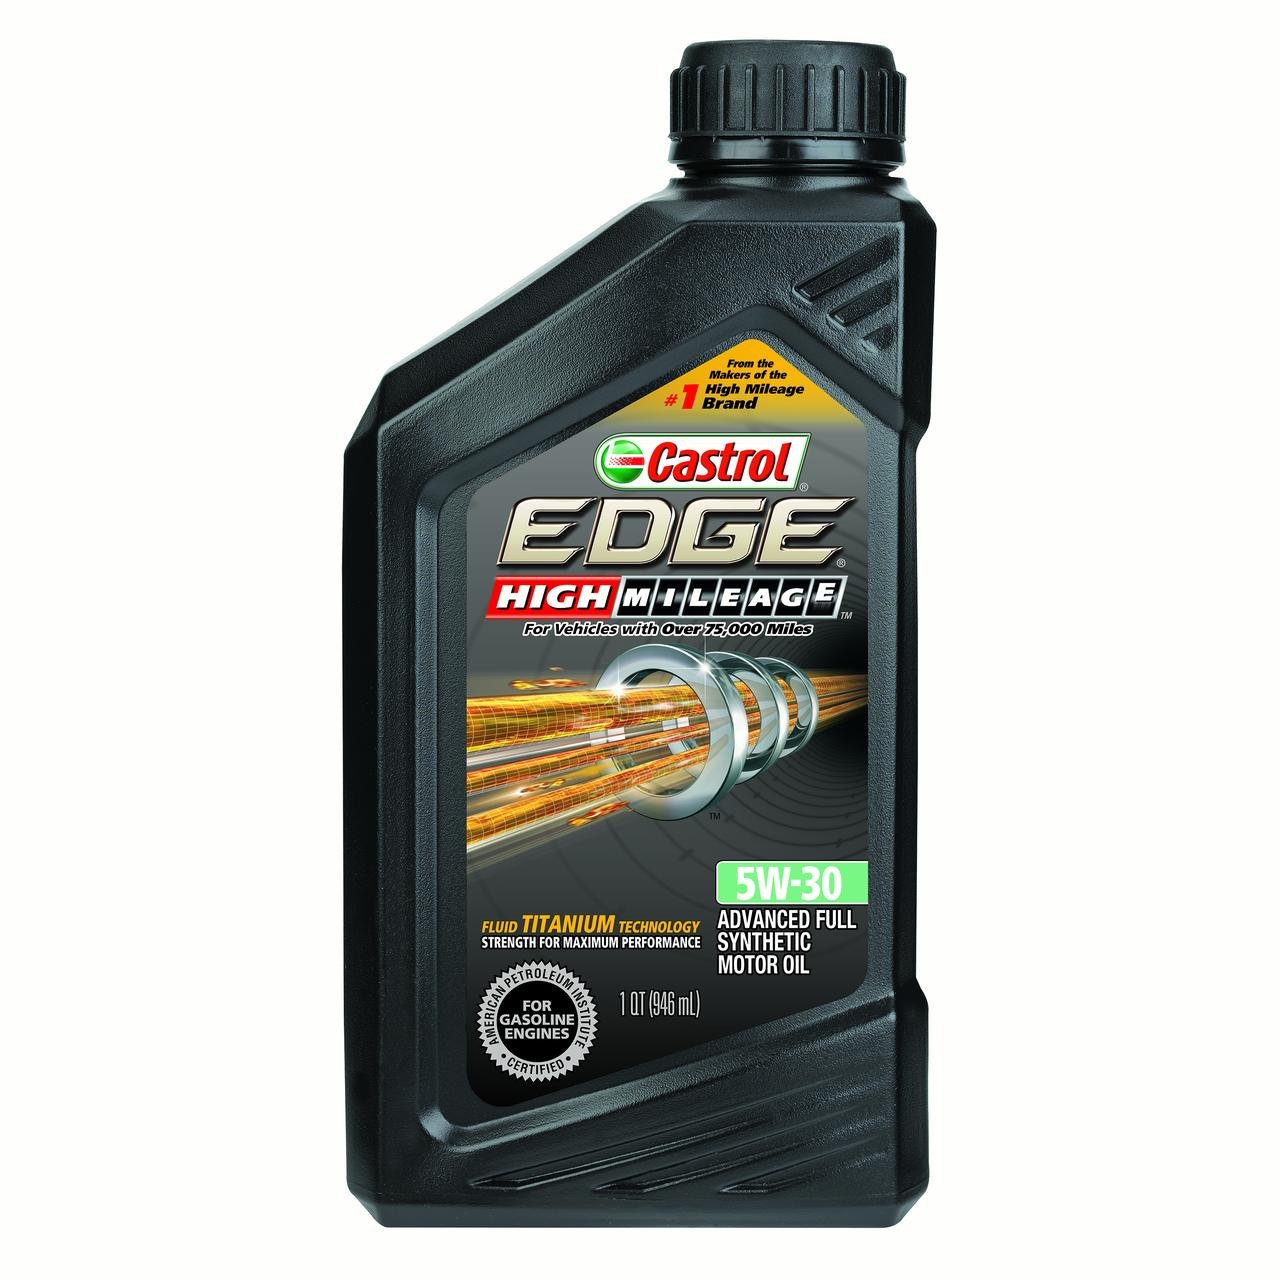 Castrol EDGE High Mileage 5W-30, Full Synthetic Motor Oil, 1 qt by Castrol